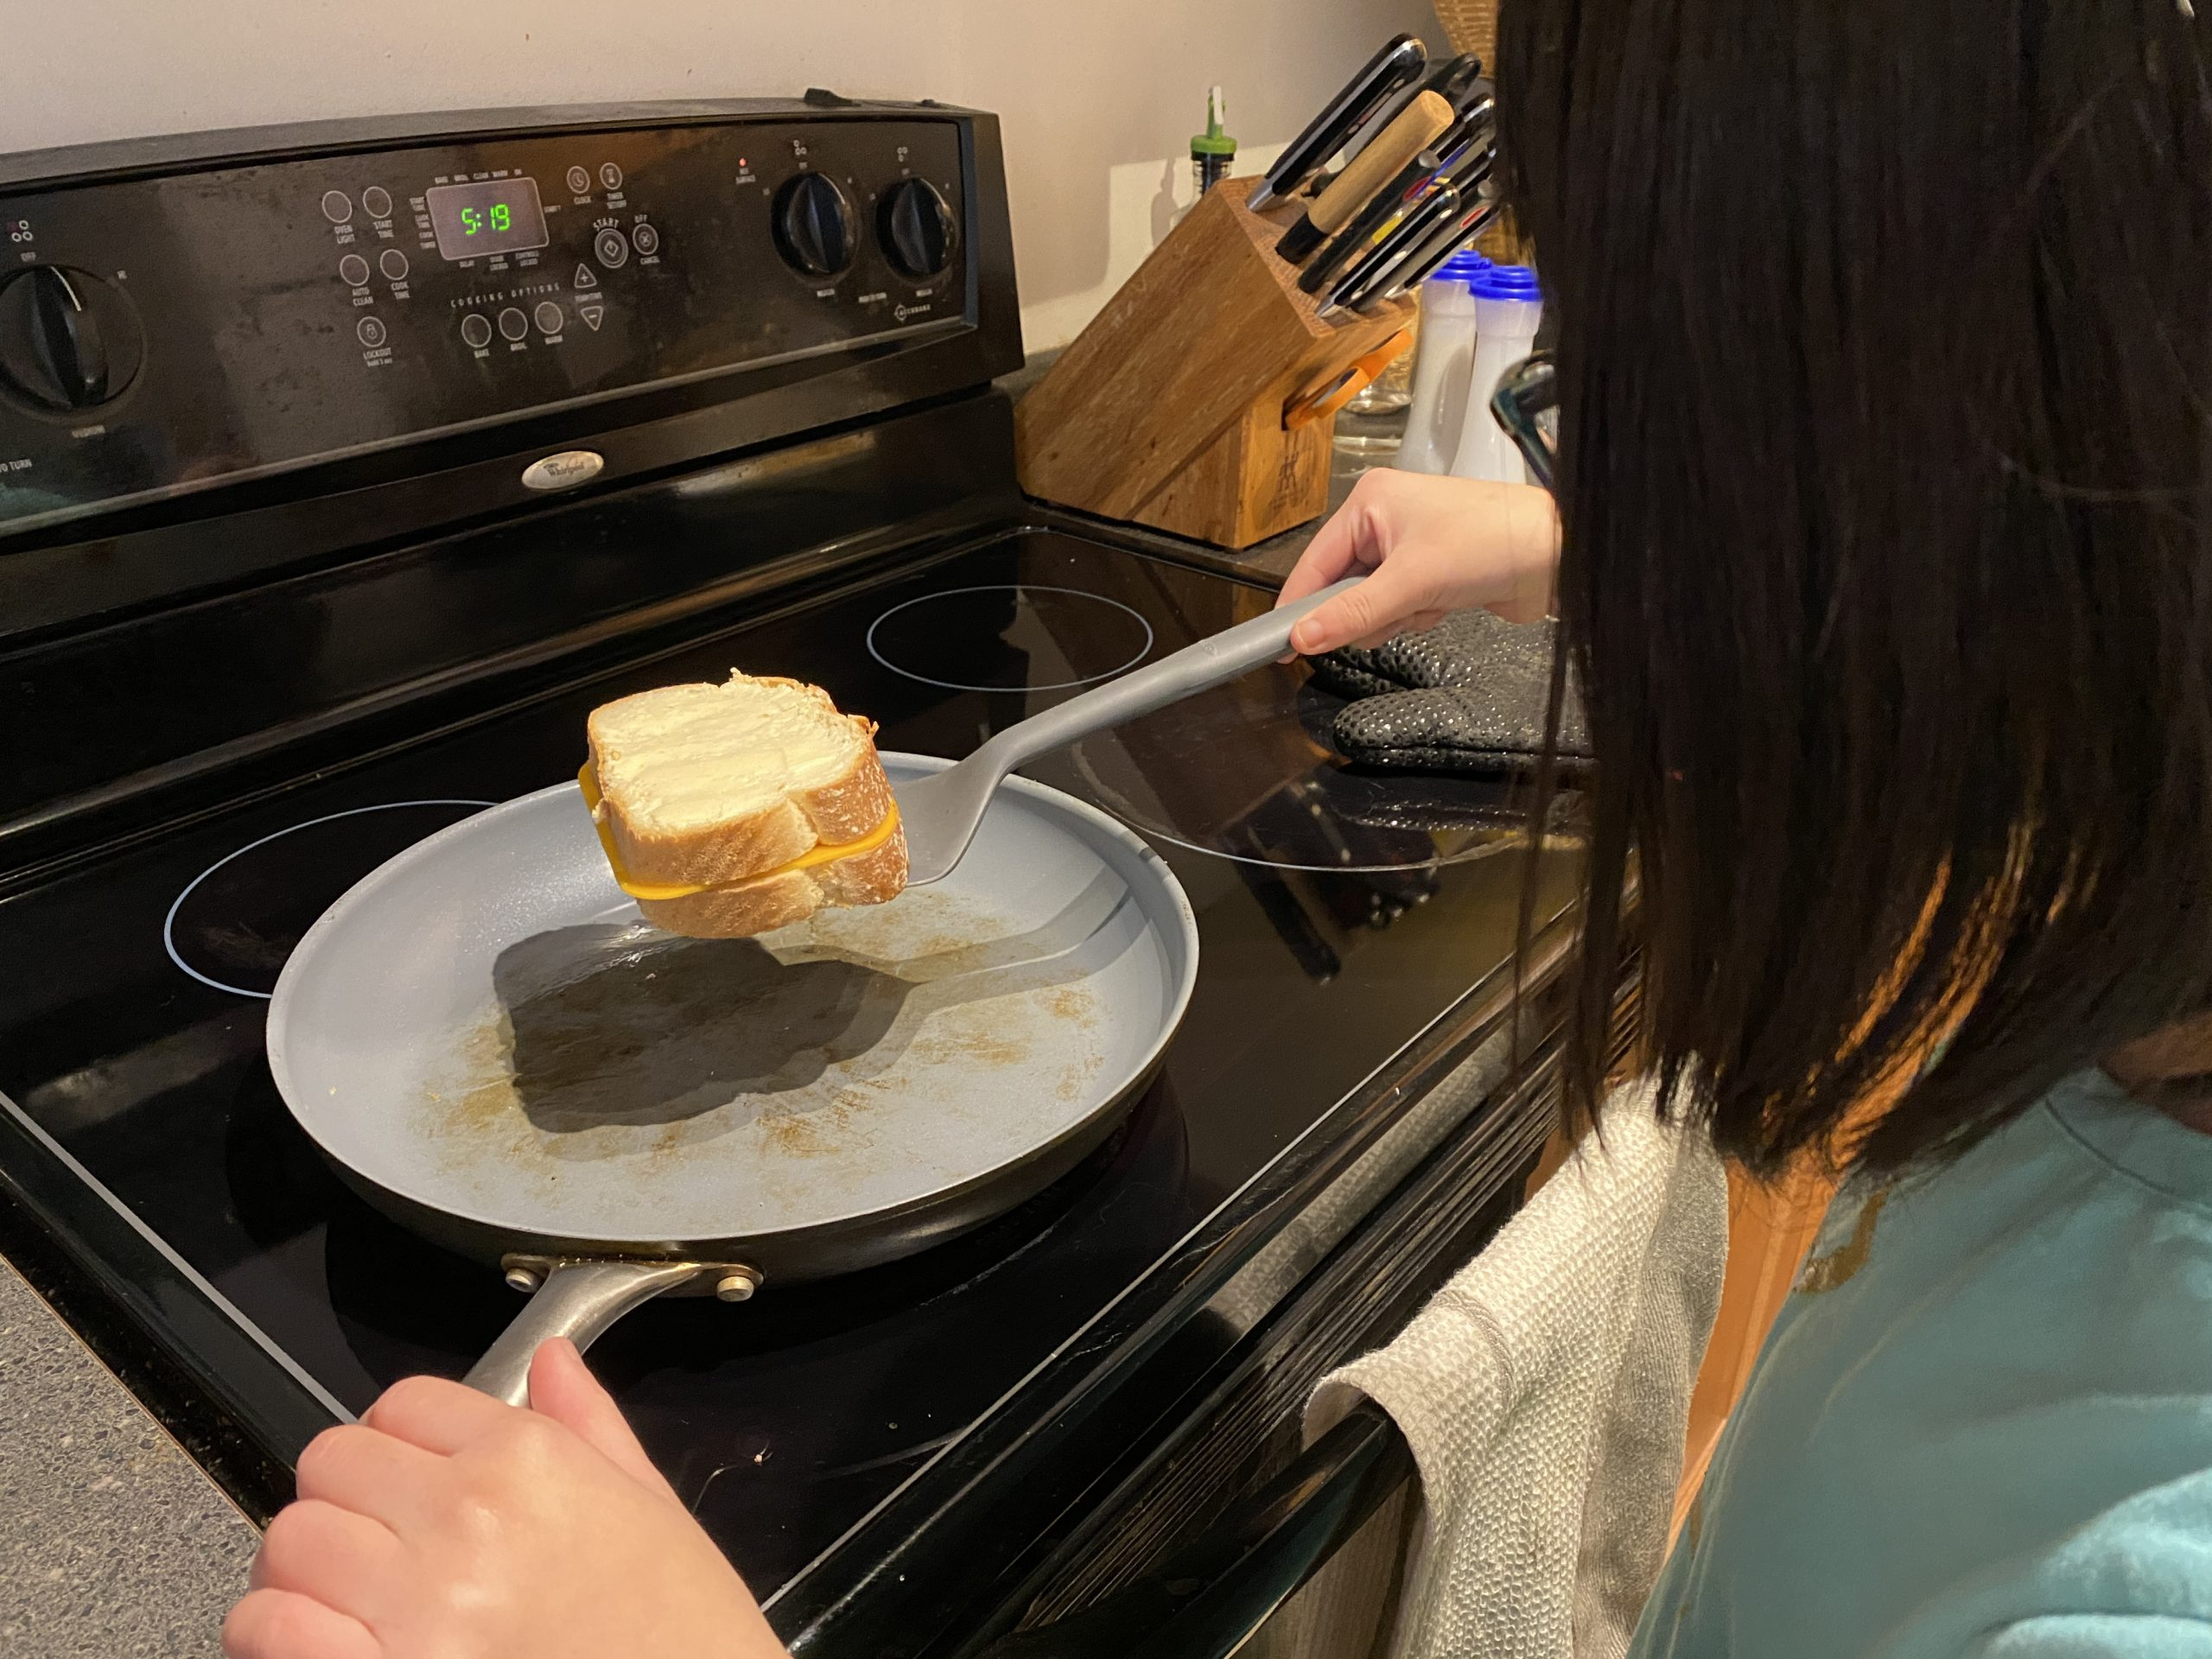 Grilled Cheese in Progress